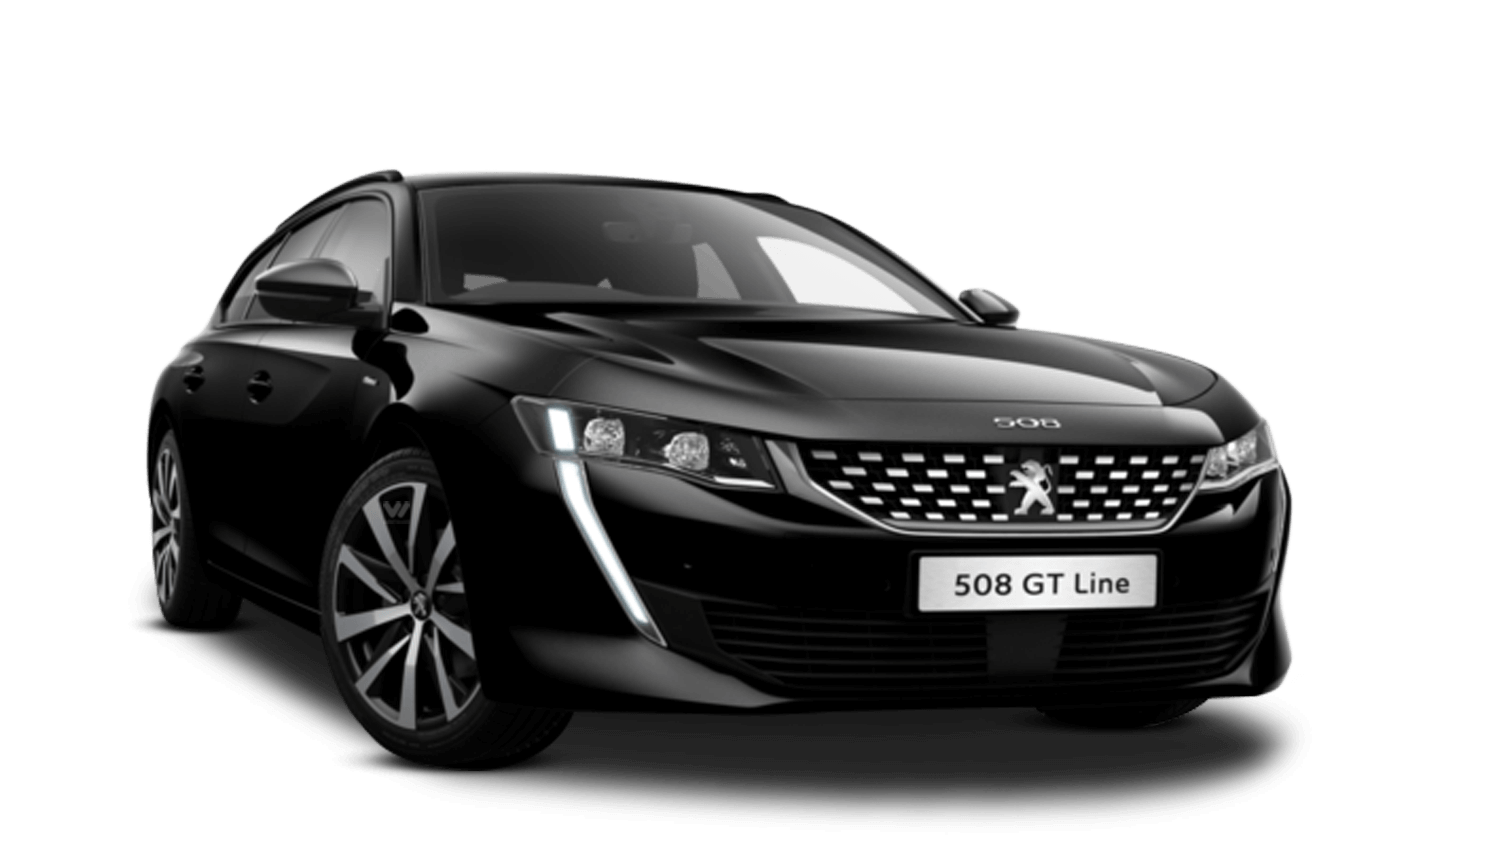 Nera Black All-New Peugeot 508 SW